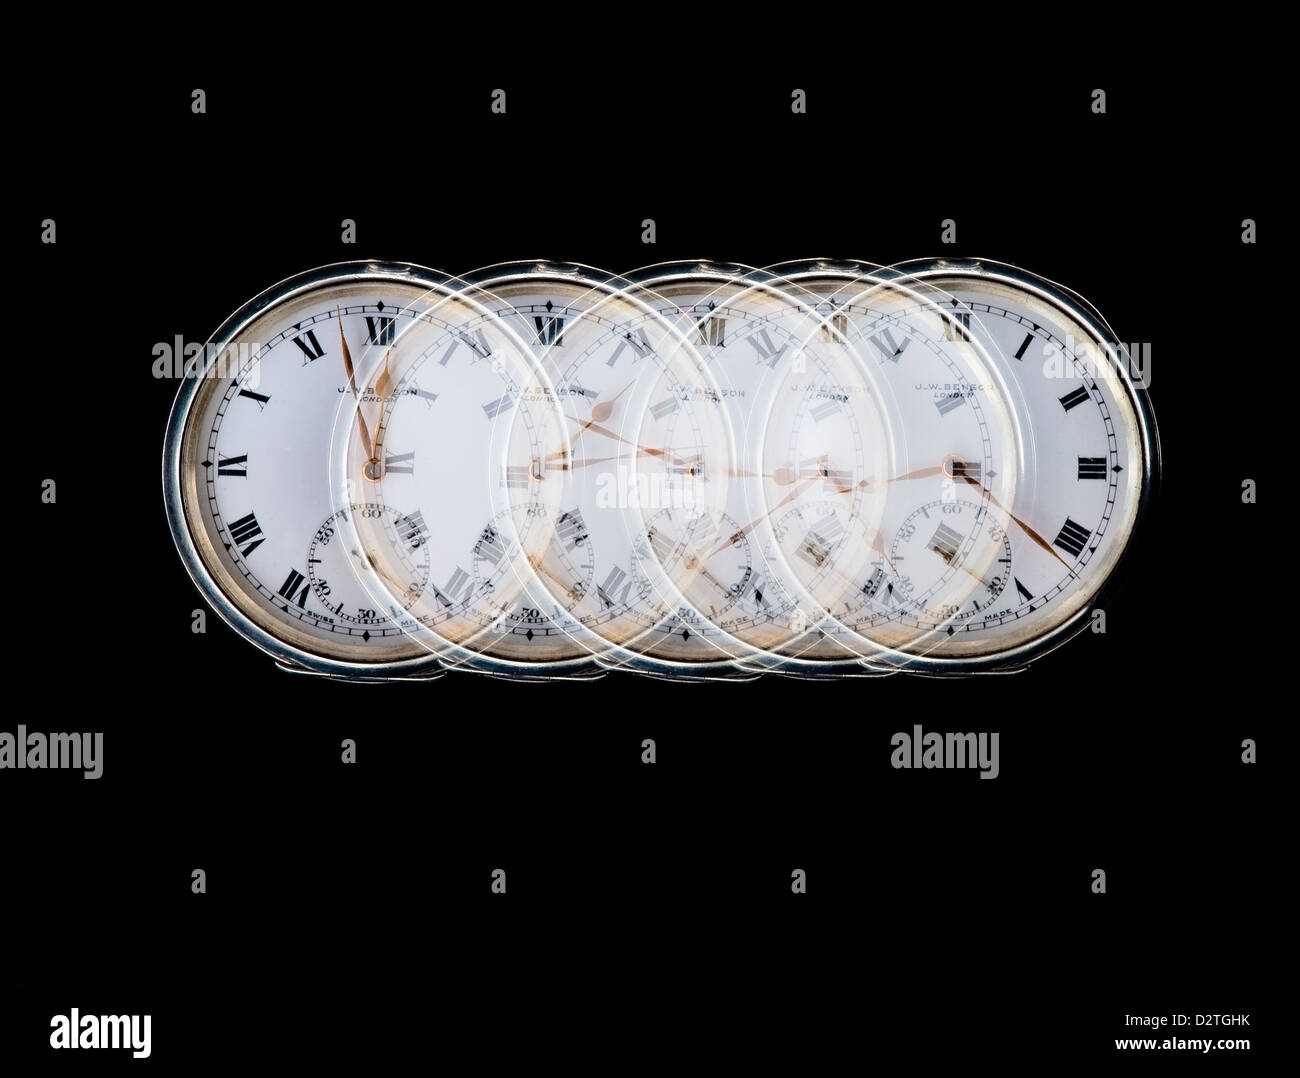 Multiple exposure showing watch face with different times. - Stock Image